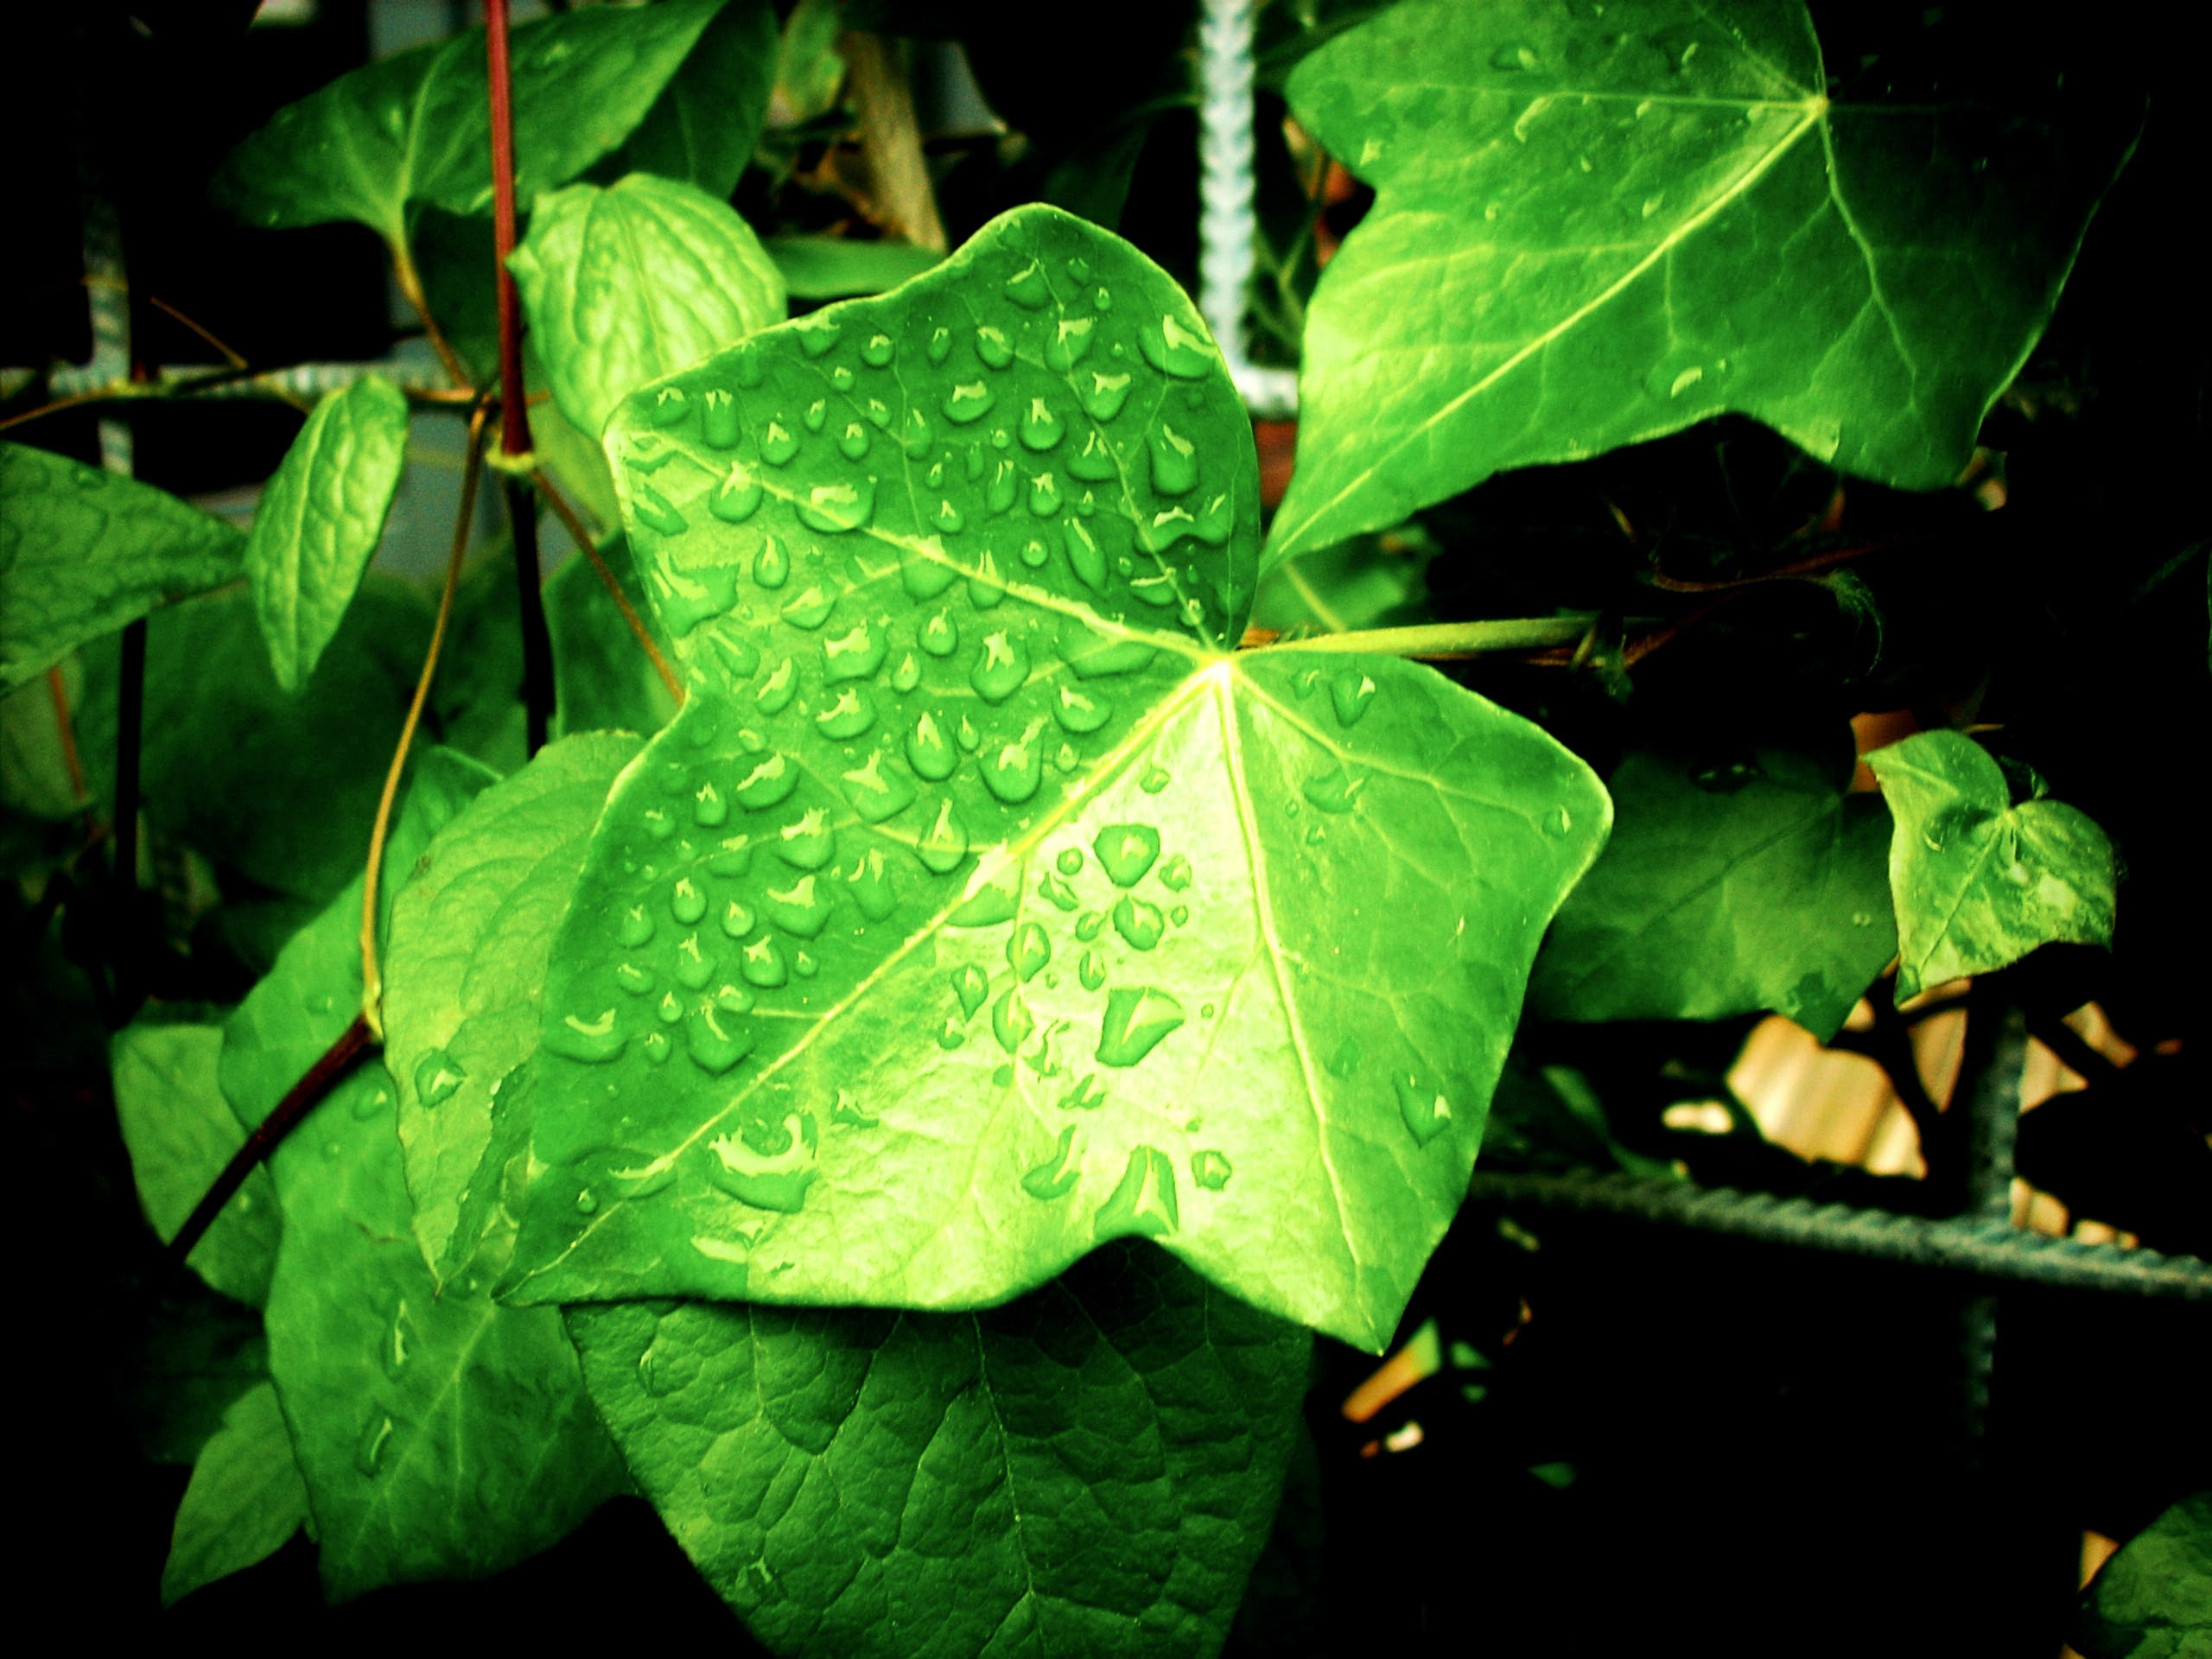 Macro Photography of Green Leaves